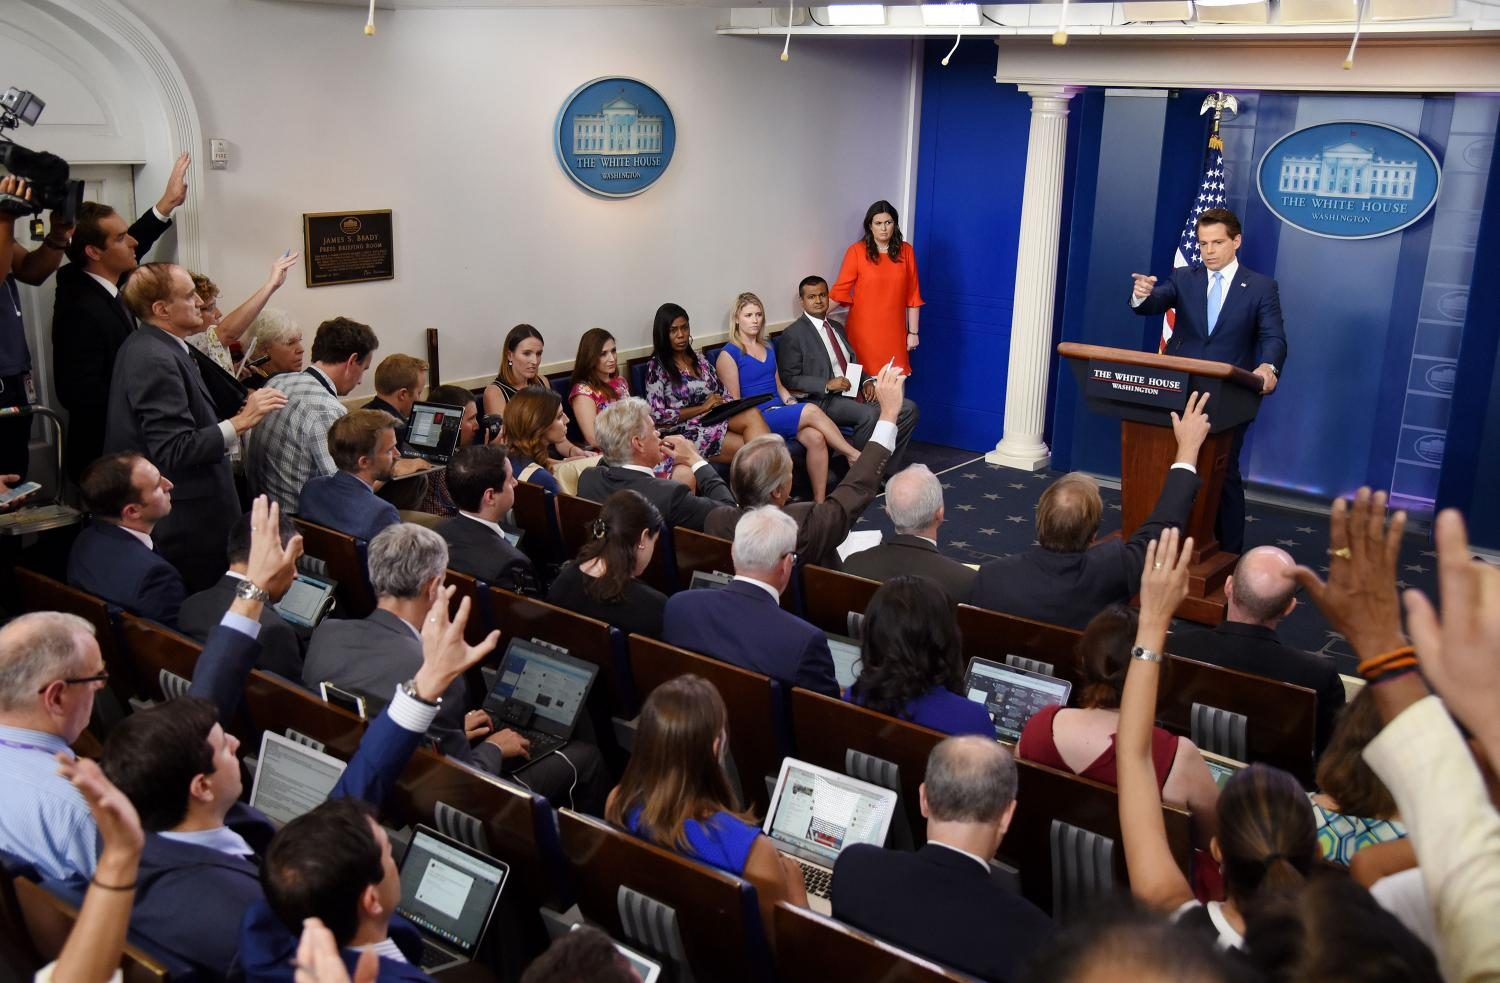 +%28Olivier+Douliery%2FAbaca+Press%2FTNS%29%0ANewly+appointed+White+House+Communications+Director+Anthony+Scaramucci+answers+questions+about+the+resignation+of+White+House+Press+Secretary+Sean+Spicer+during+a+press+briefing+on+Friday%2C+July+21%2C+2017+at+the+White+House+in+Washington%2C+D.C.